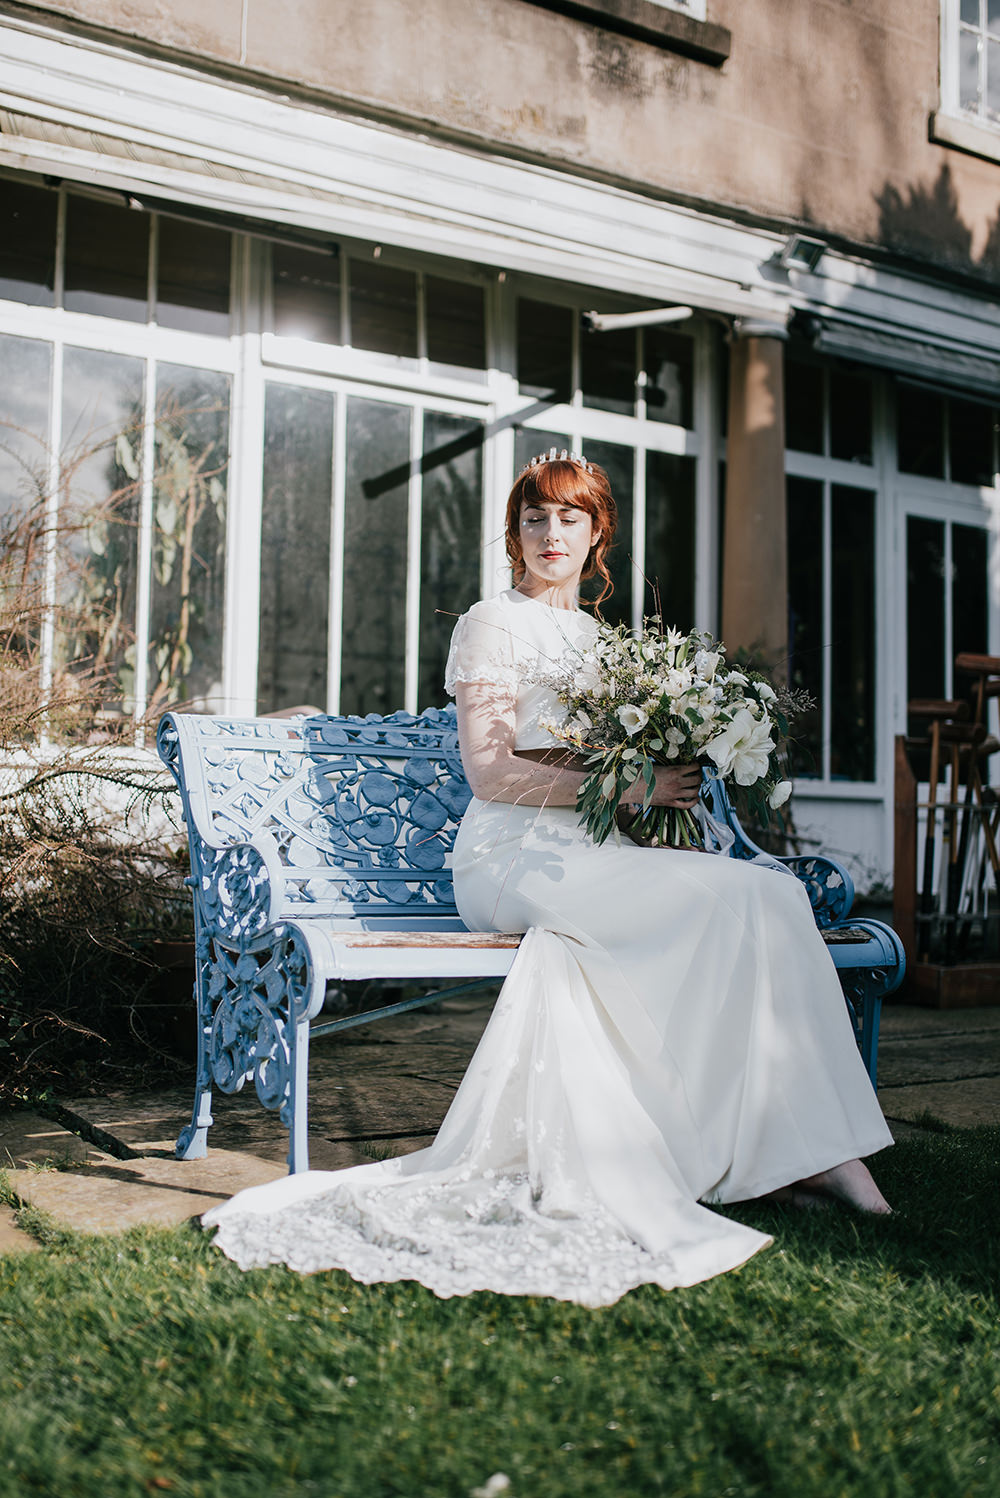 Bride Bridal Dress Gown Top Skirt Crop Sleeves Lace Two Piece Lace Train Blue Wedding Ideas Emma McNair Photography